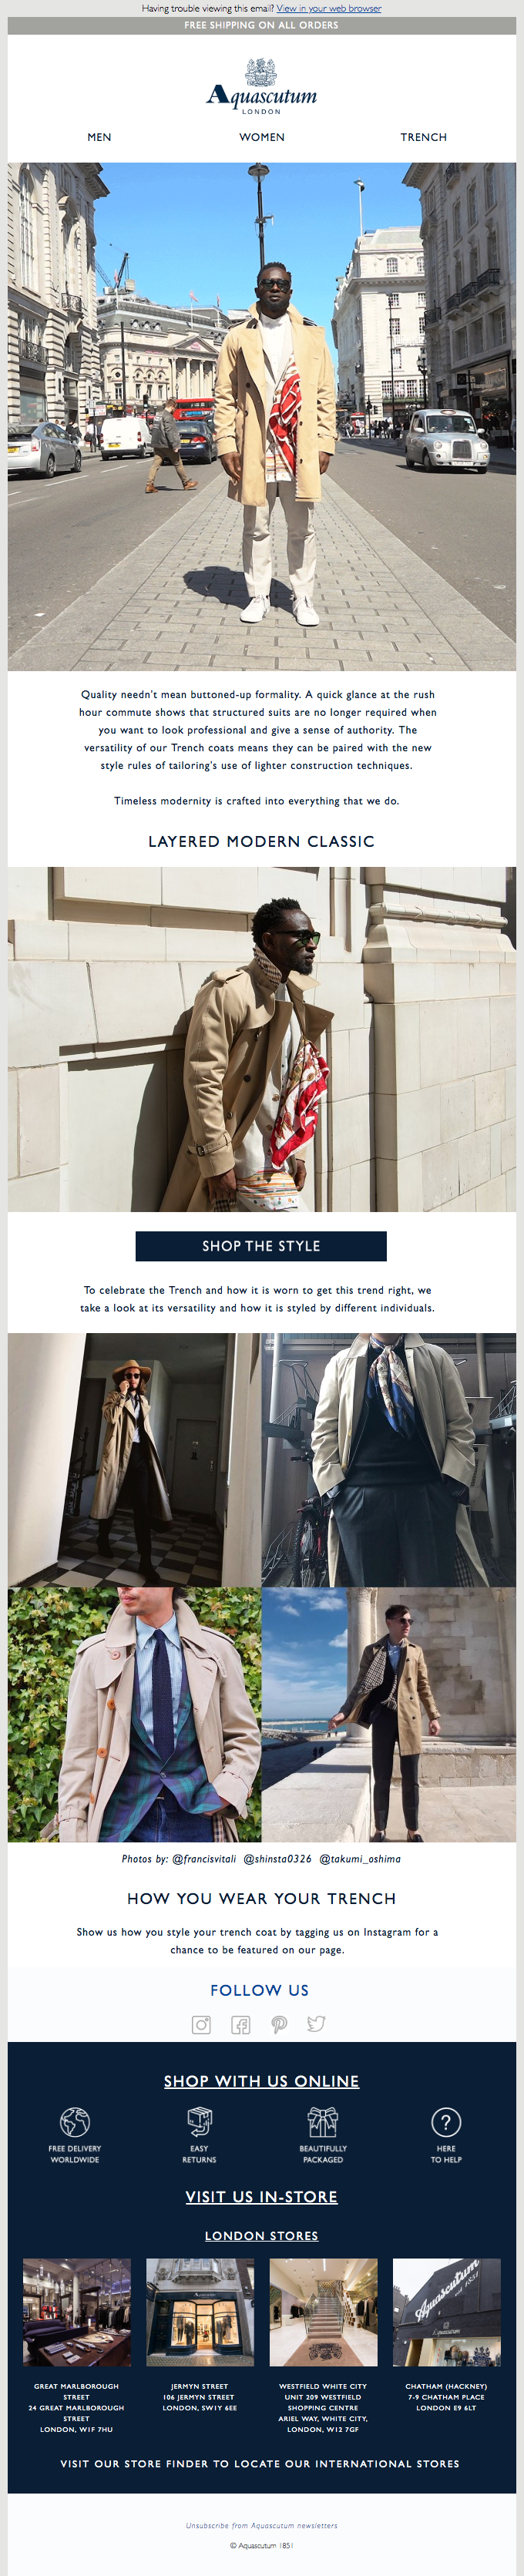 How To Style A Trench | Layered Modern Classics